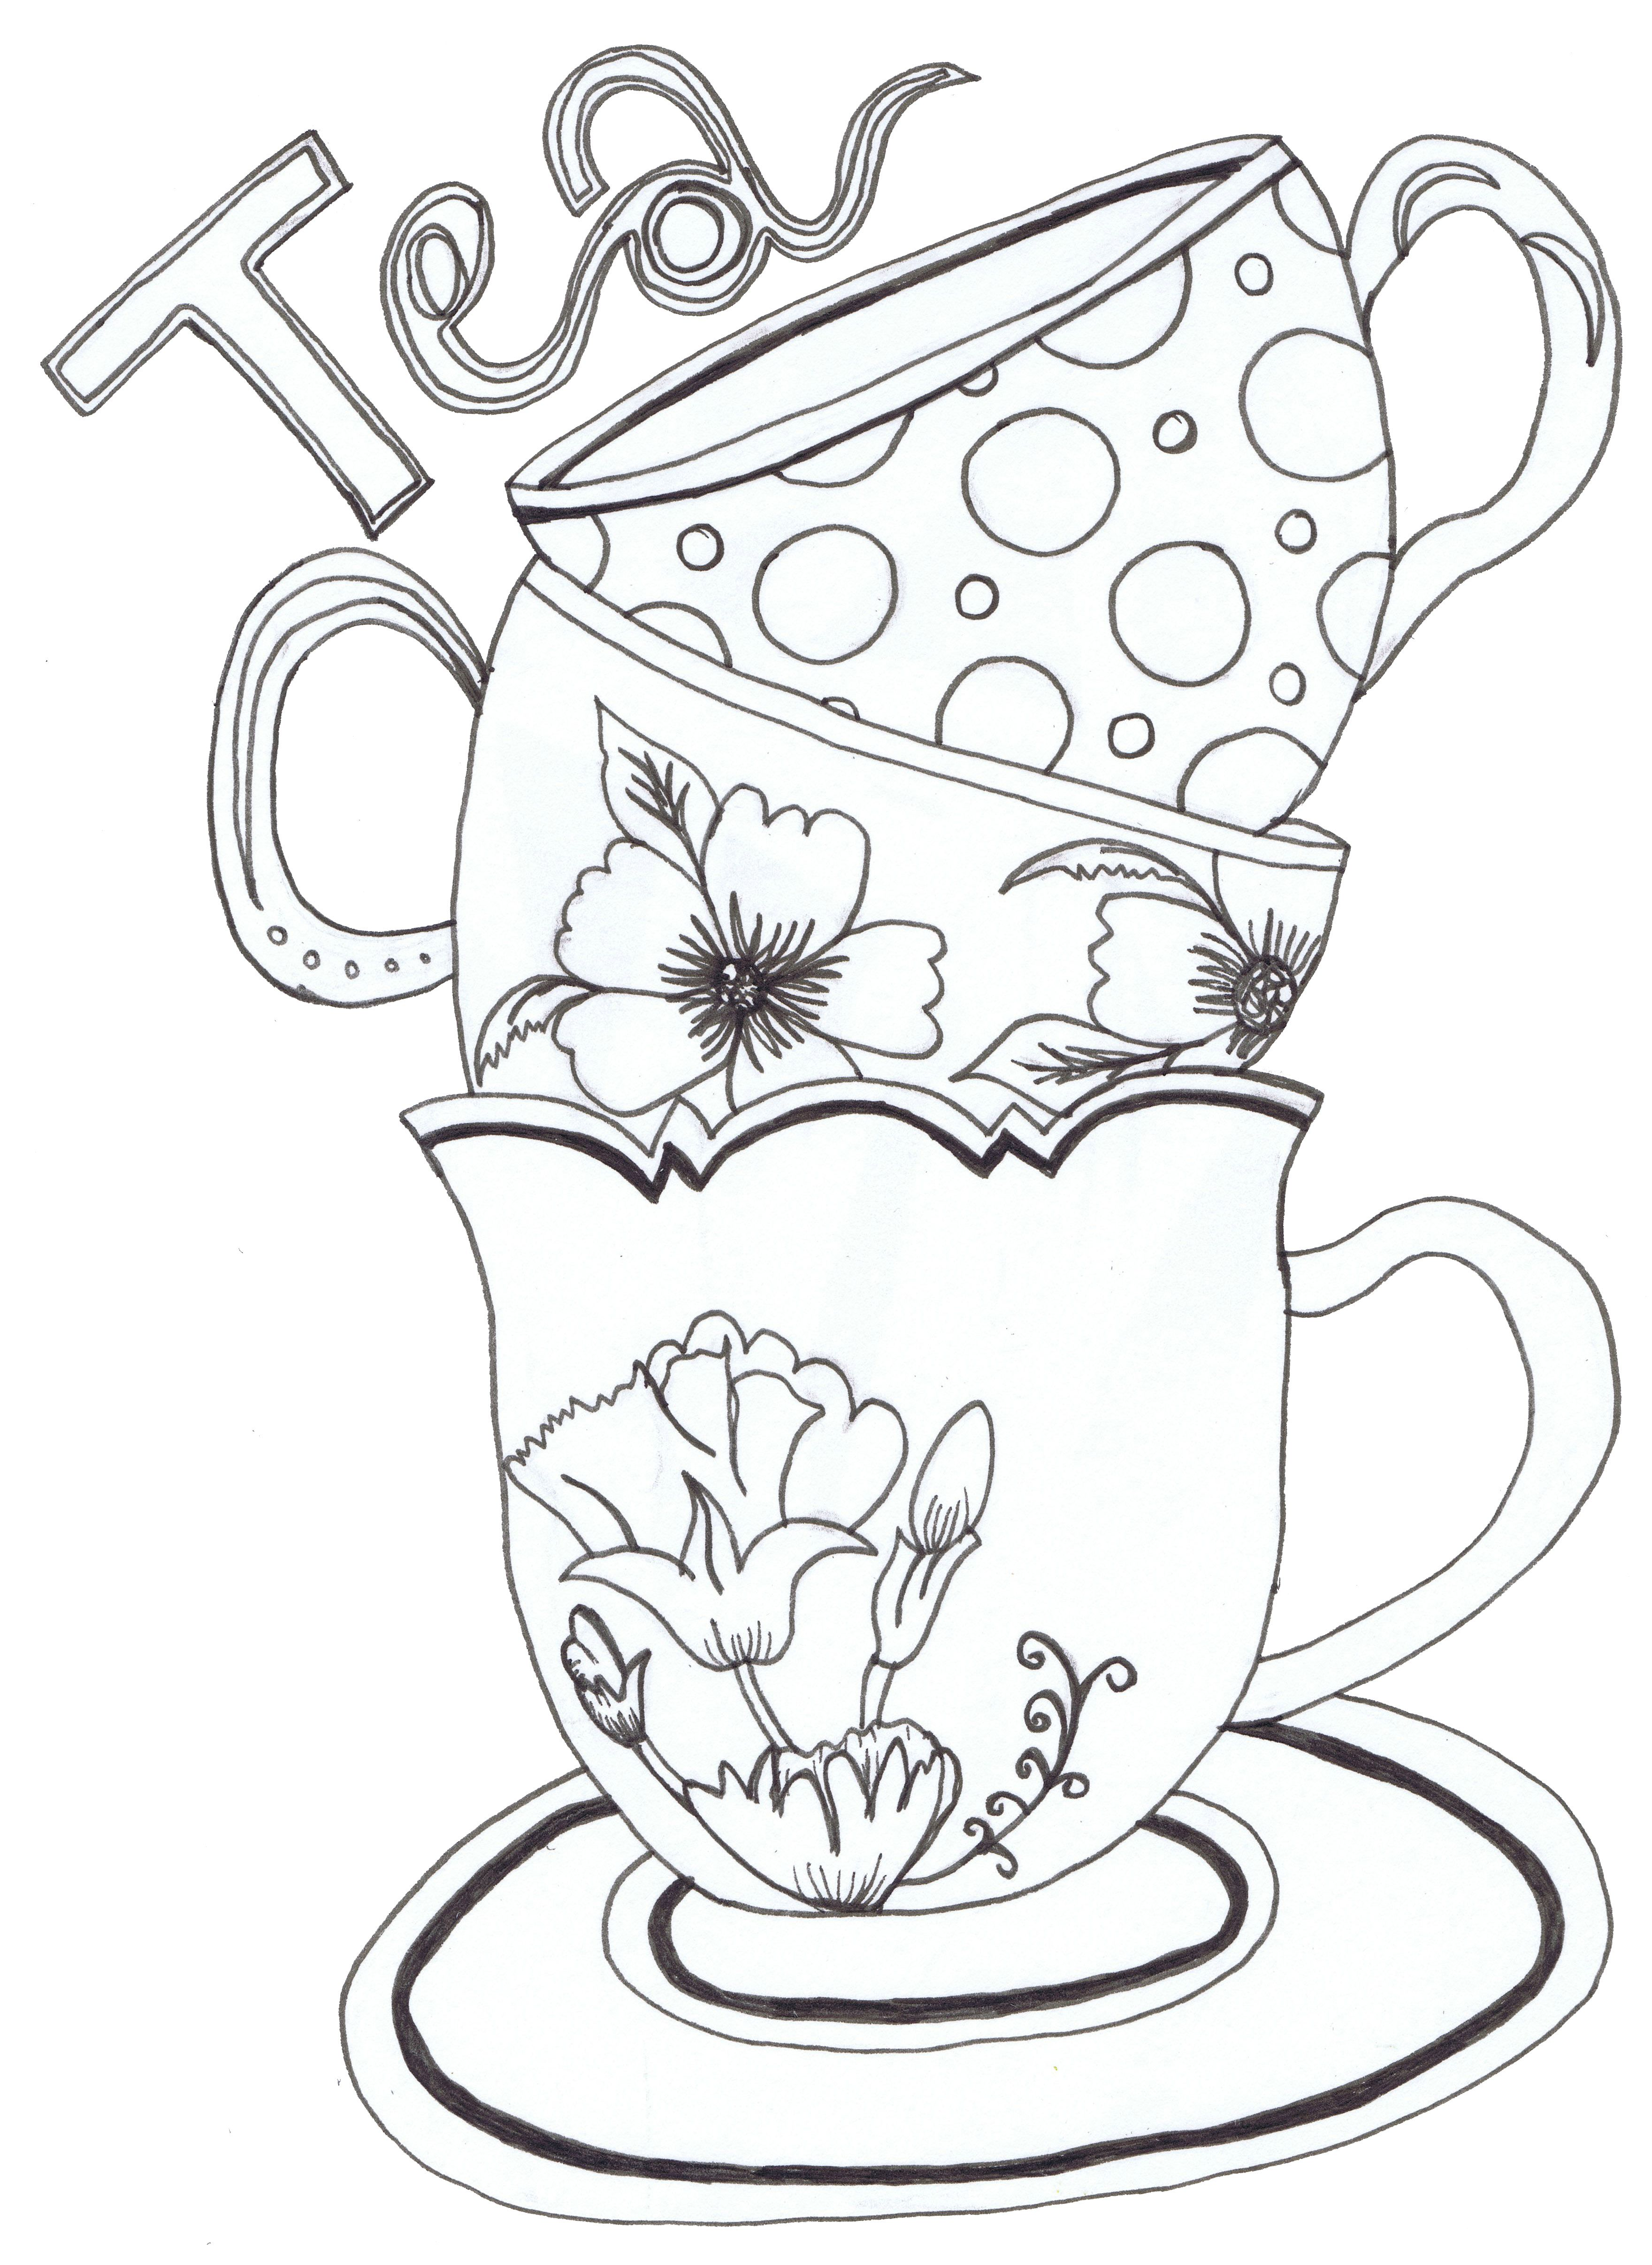 Teapot Teacups And Cake Coloring Page Rubber Stamp Zazzle Com